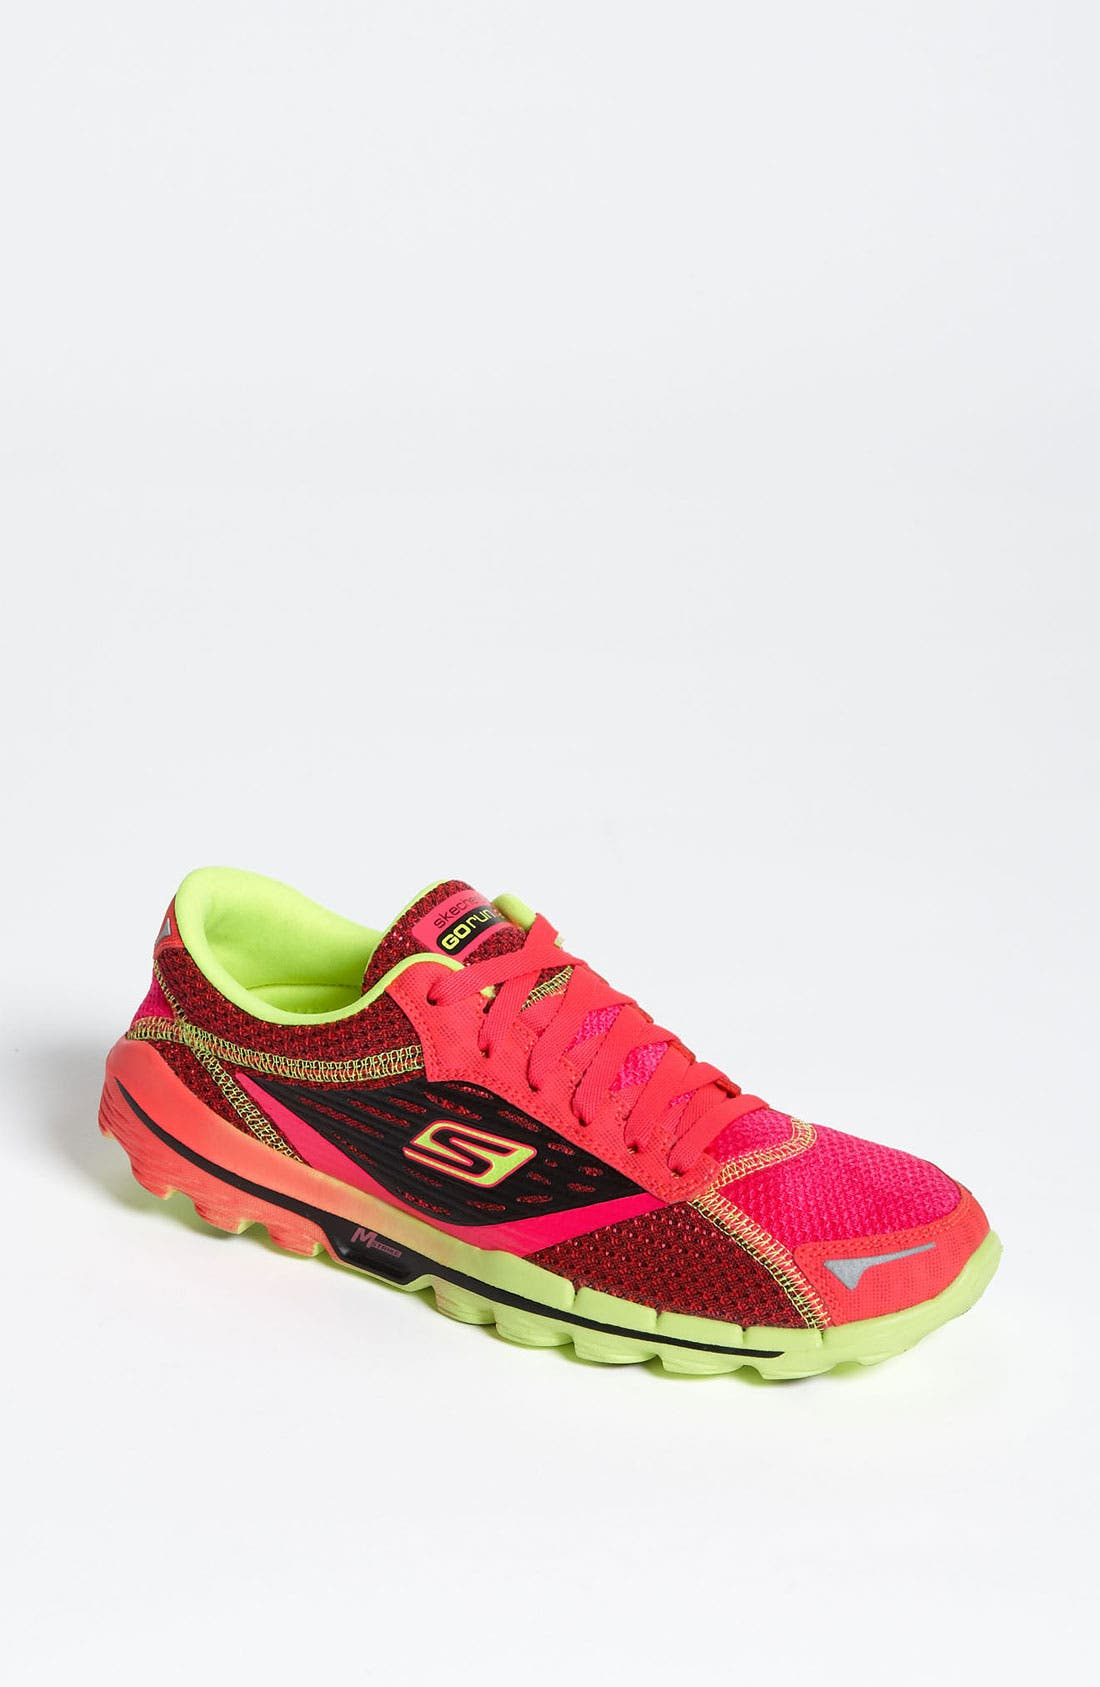 Main Image - SKECHERS 'Go Run 11' Running Shoe (Women)